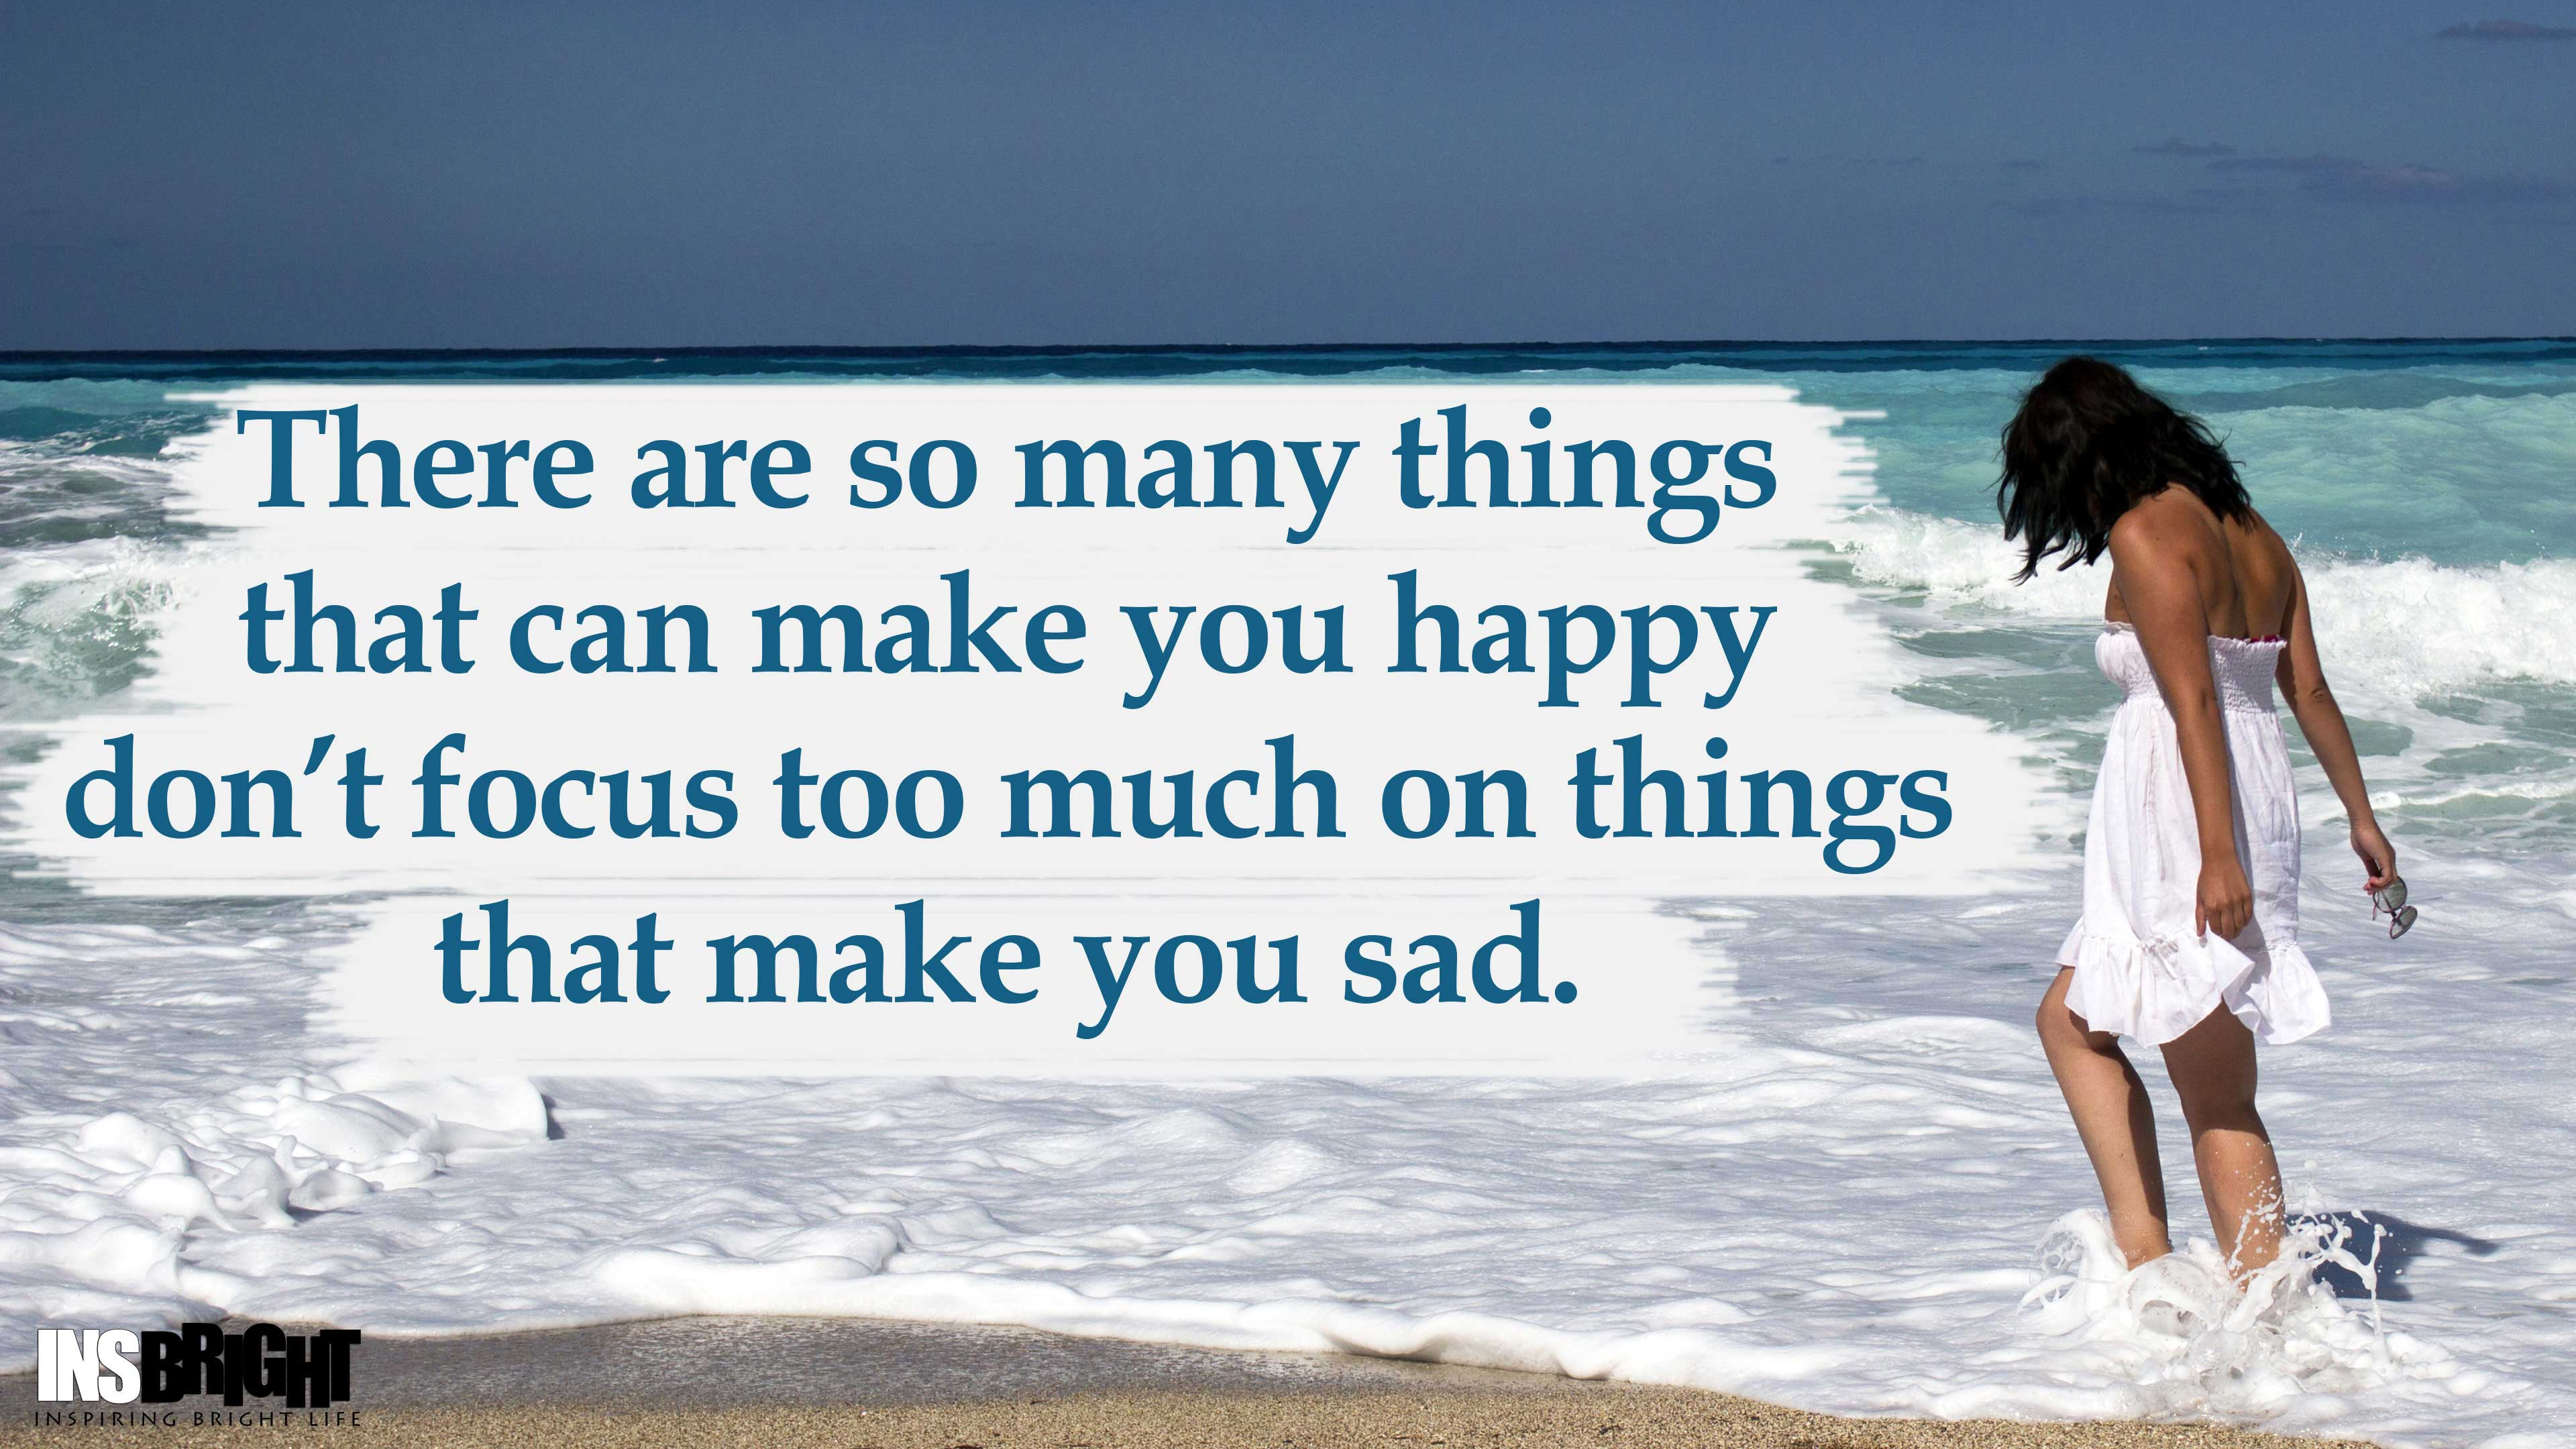 So Happy Quotes 14 Inspirational Don't Be Sad Quotes Images  Insbright